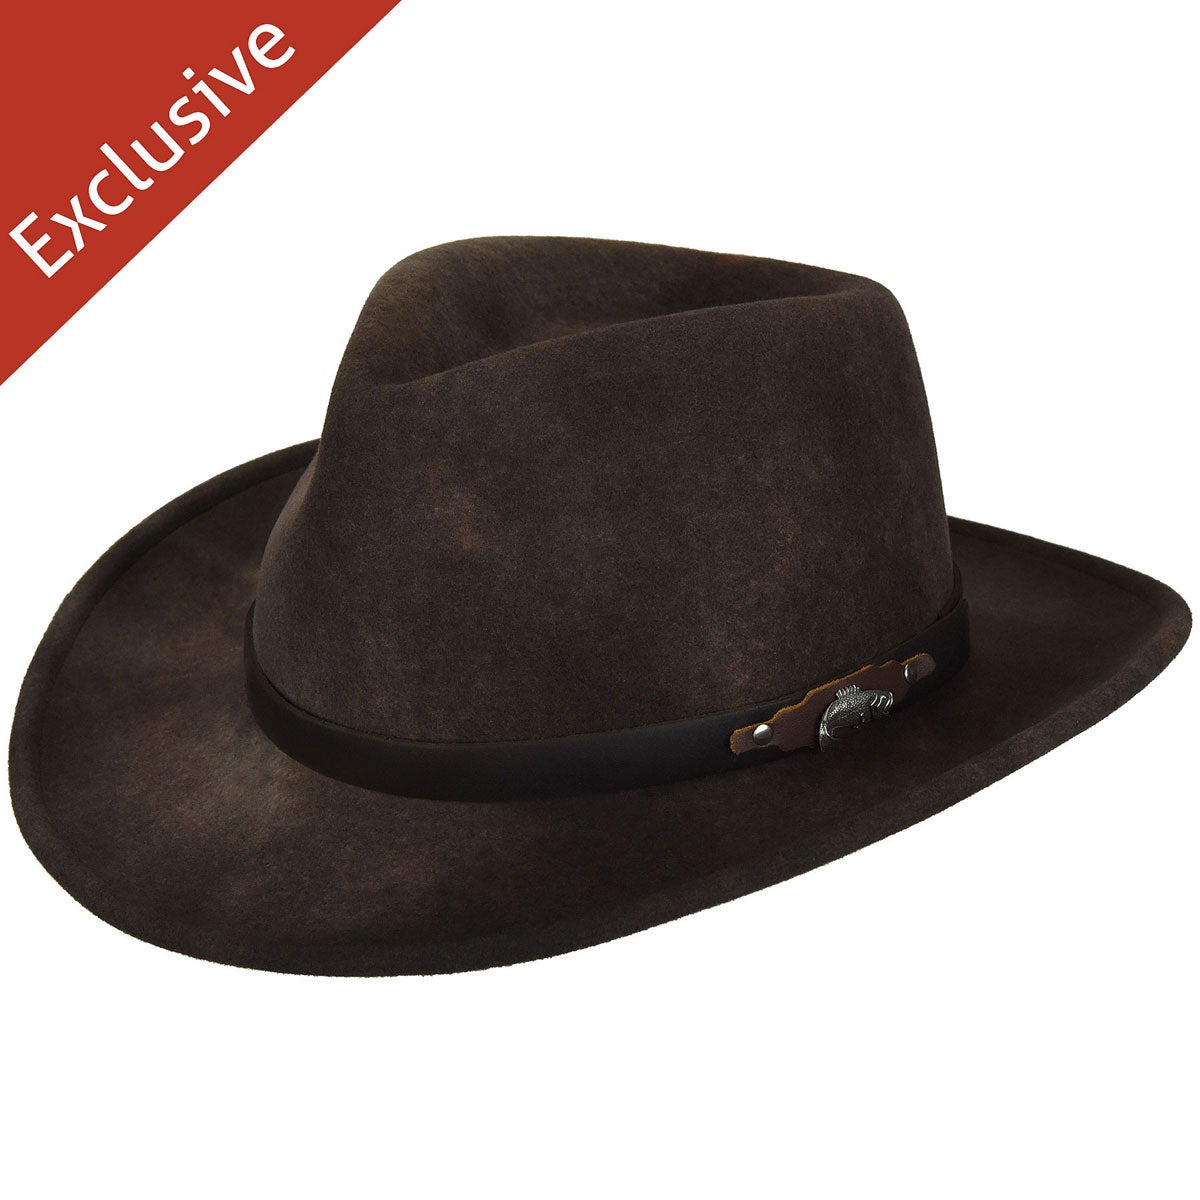 Hats.com Gadabout Outback Hat - Exclusive in Distressed Brown